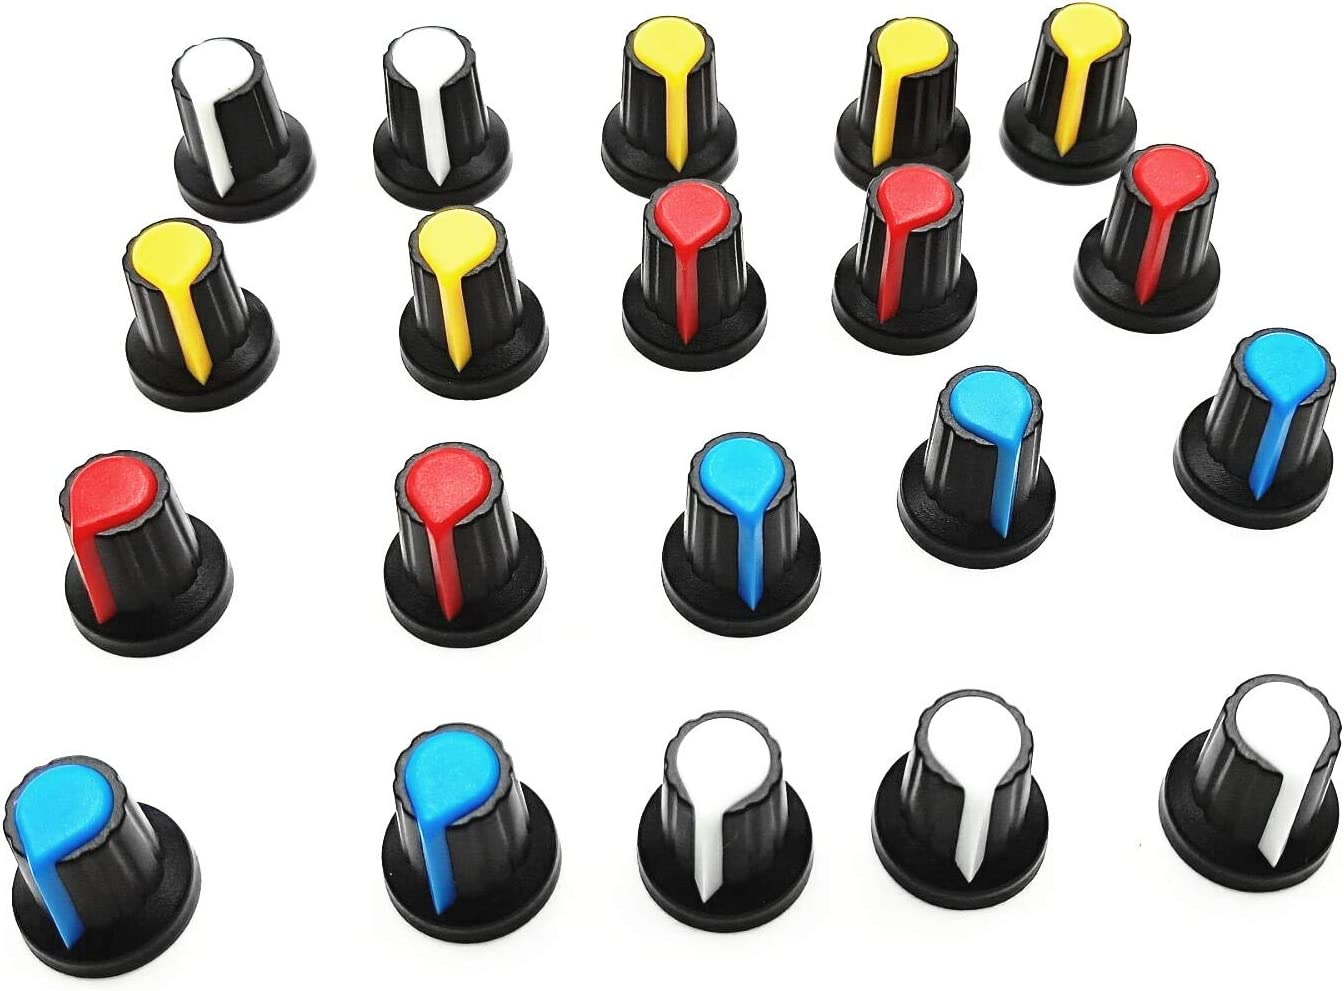 10PCS Useful Volume Control Rotary Knobs For 6mm Dia Knurled Shaft Potentiometer